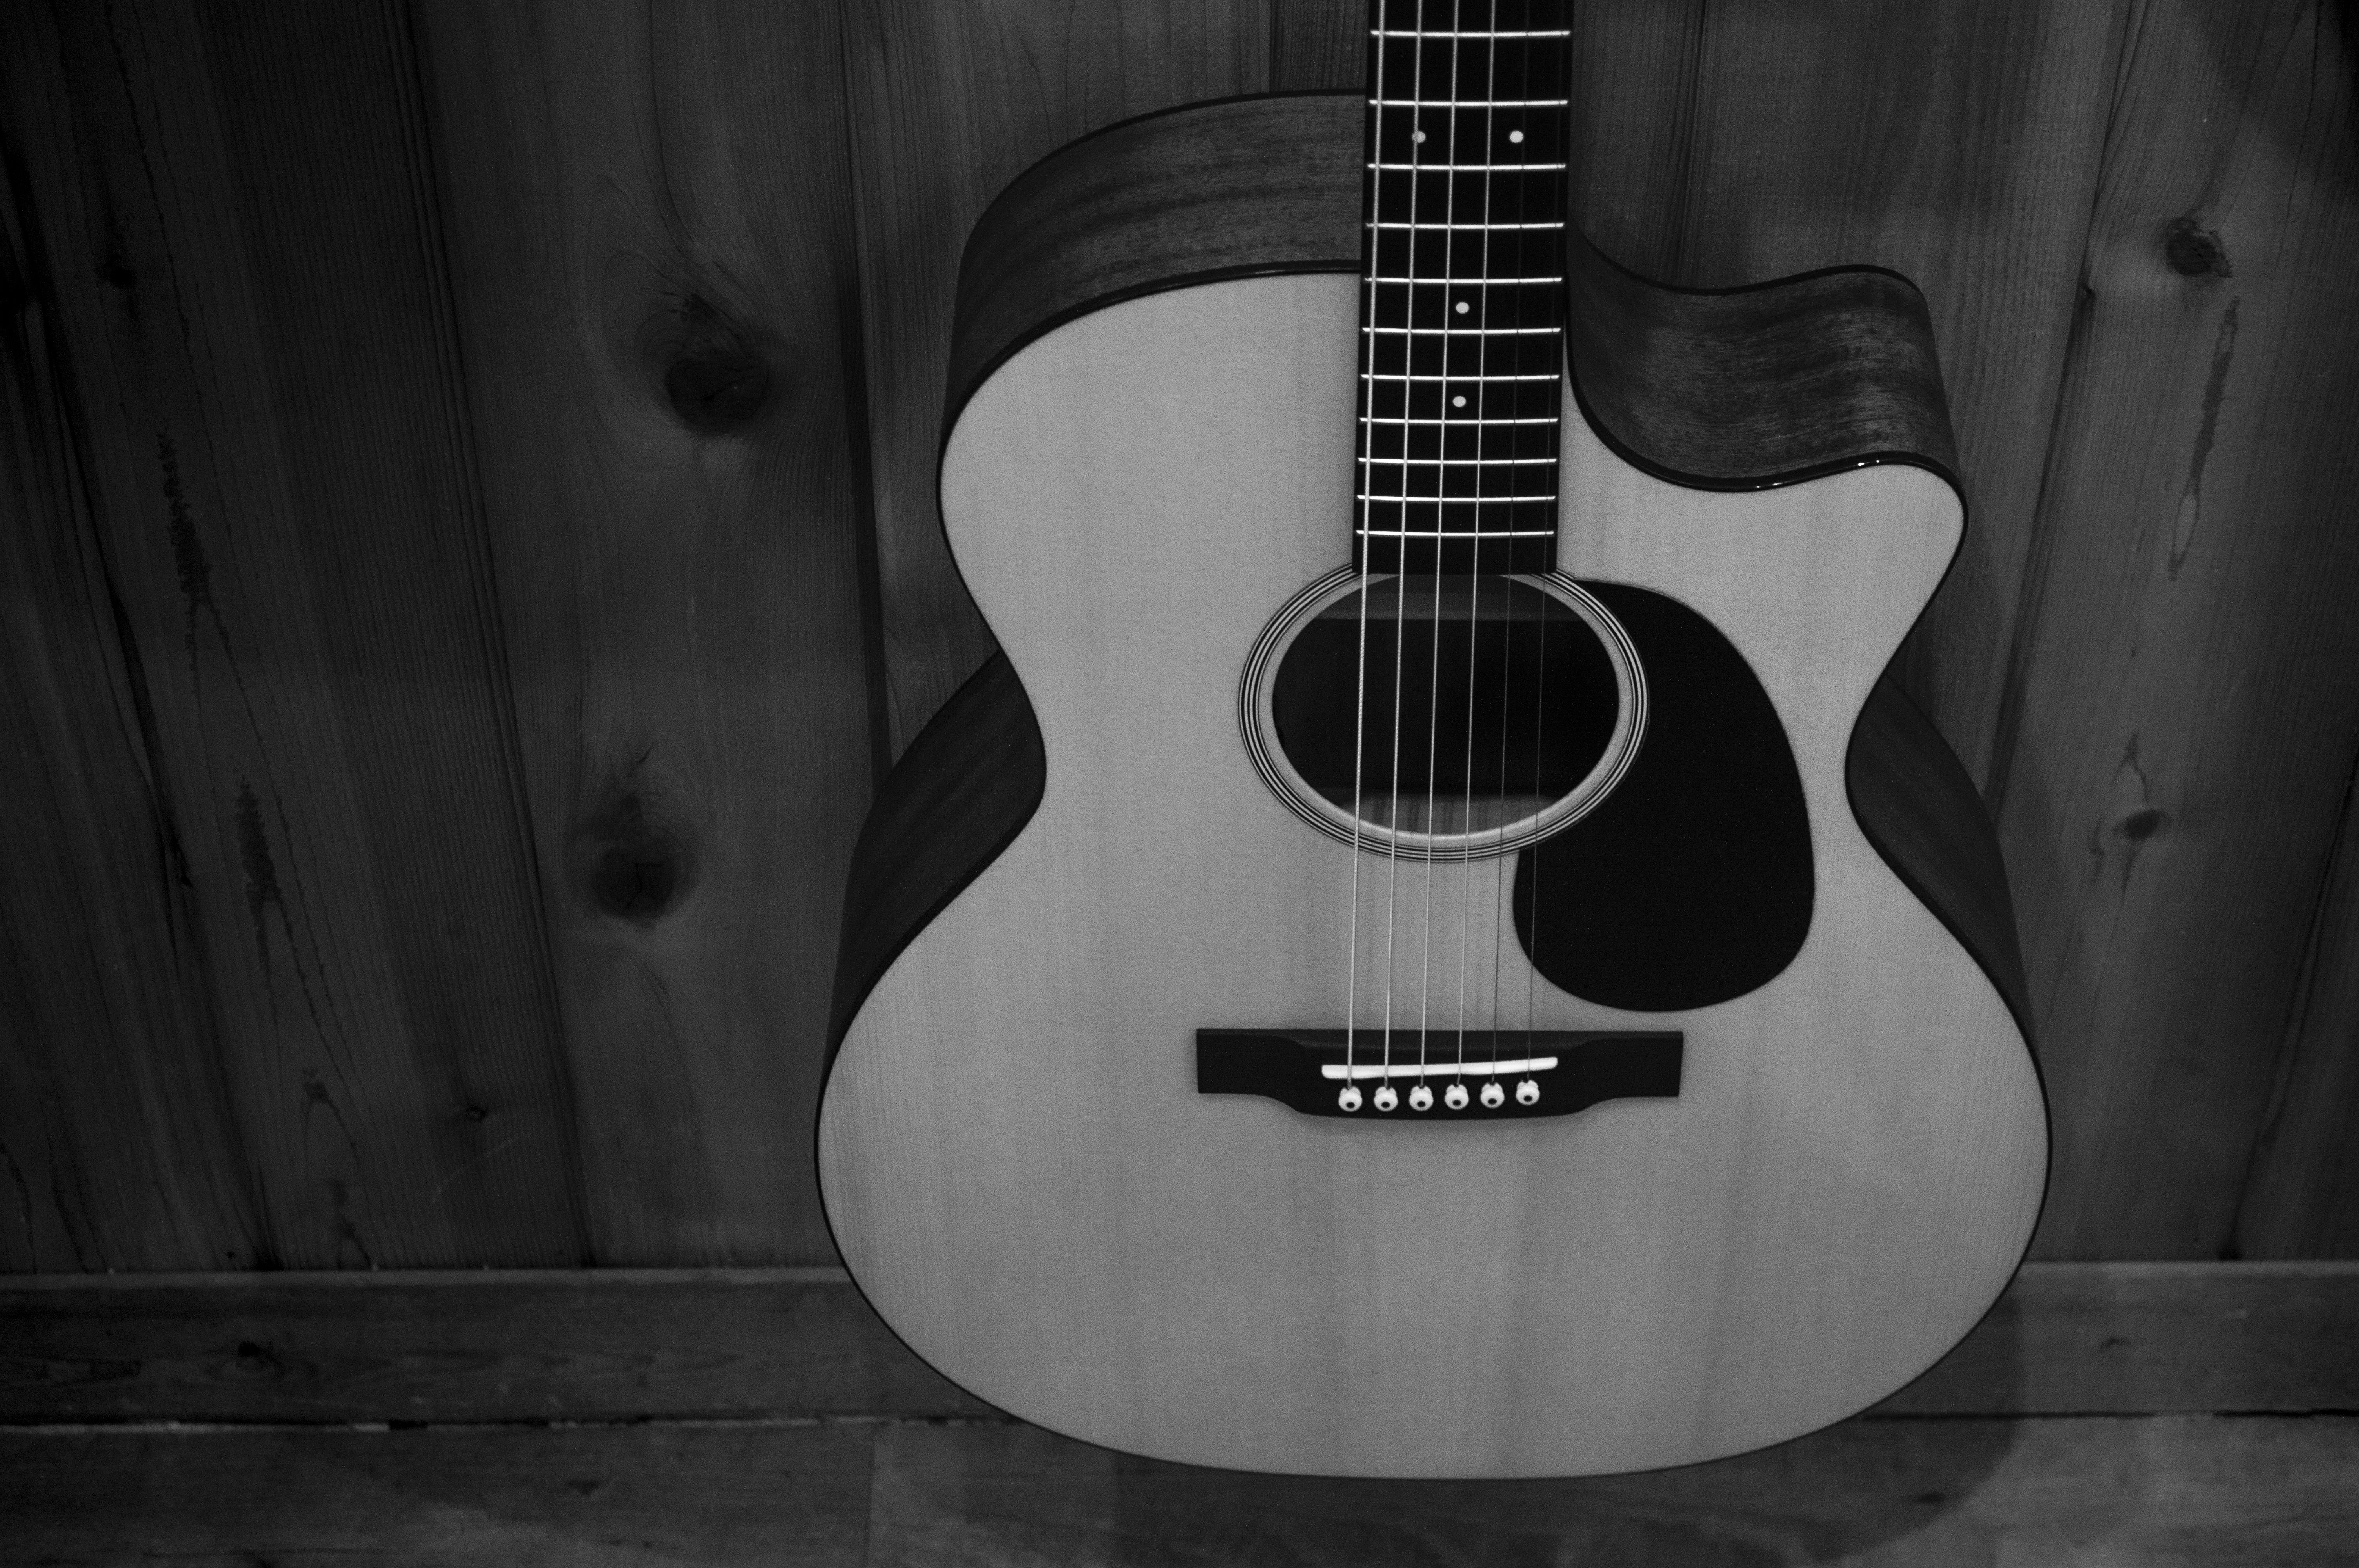 Greyscale Photo of Acoustic Guitar on Wooden Fence